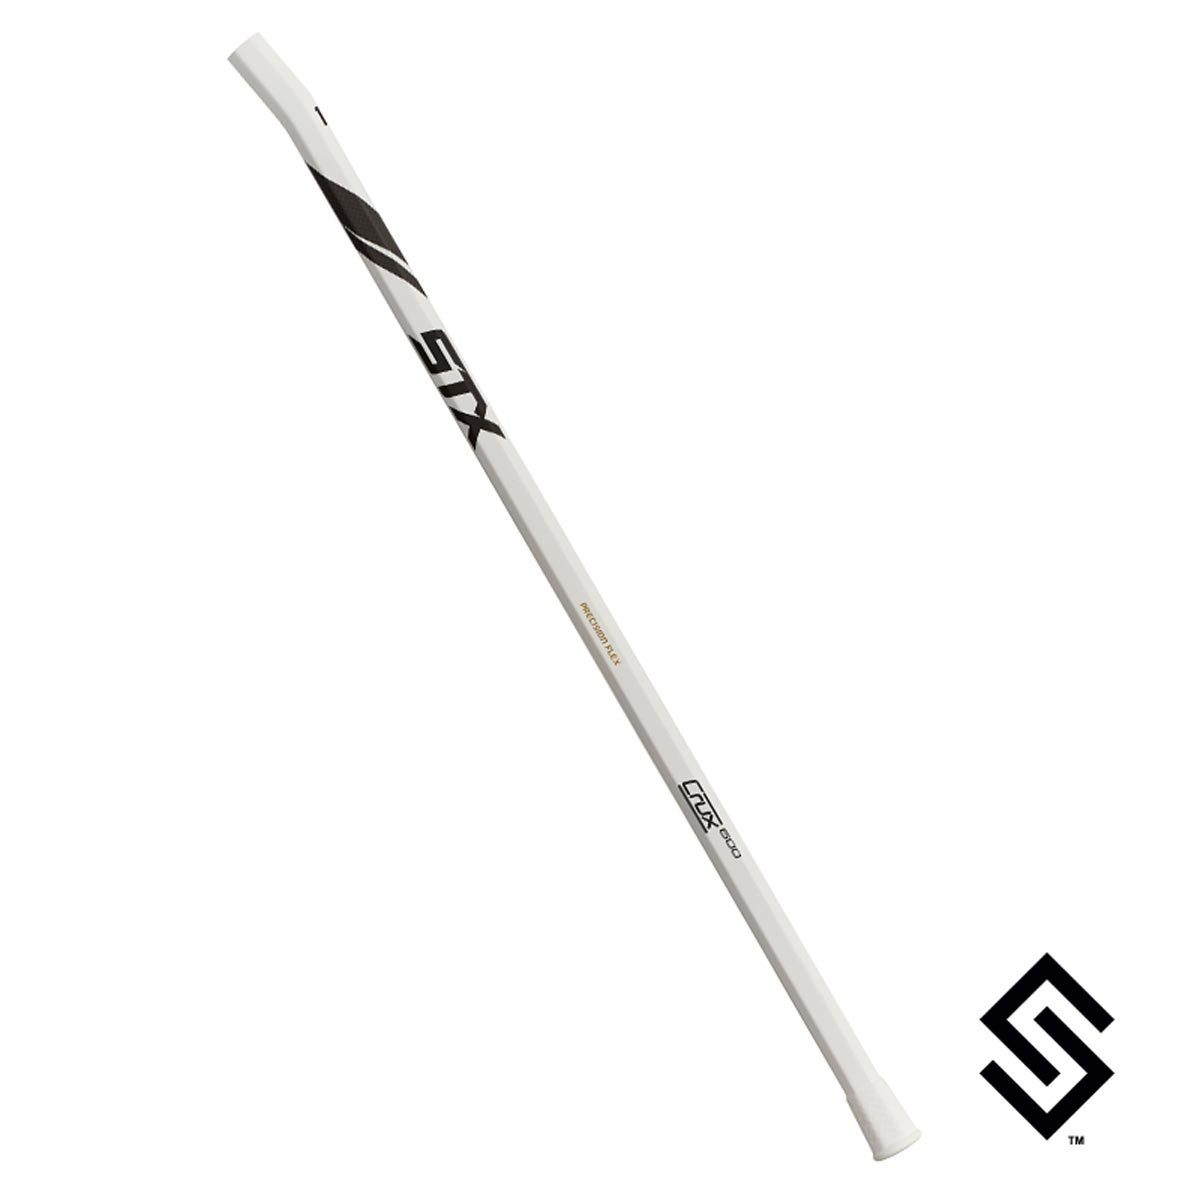 STX Crux 600 Precision Flex Women's 10 Degree Lacrosse Shaft